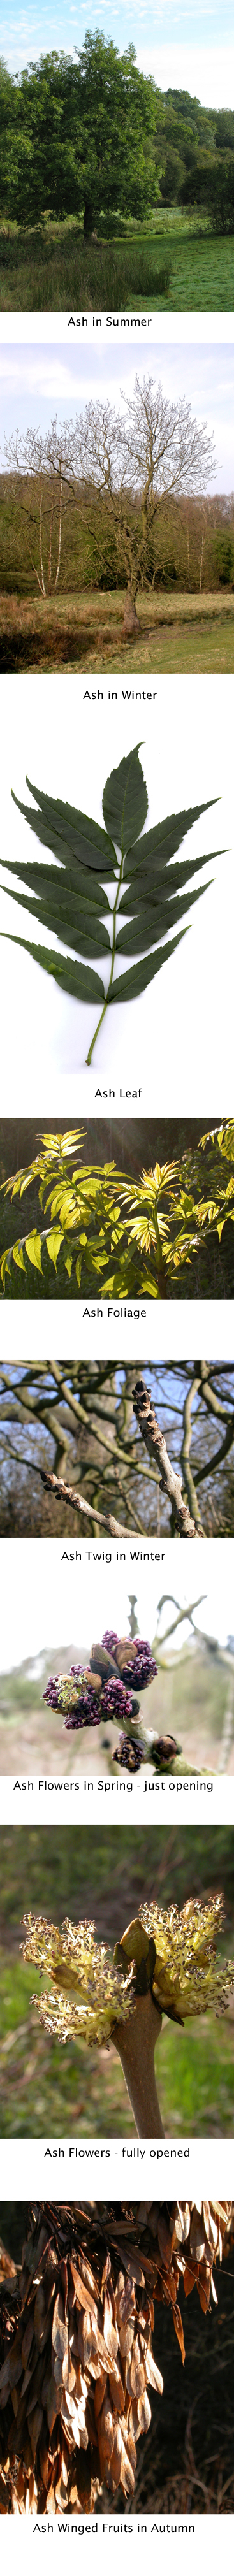 ash composite reduced